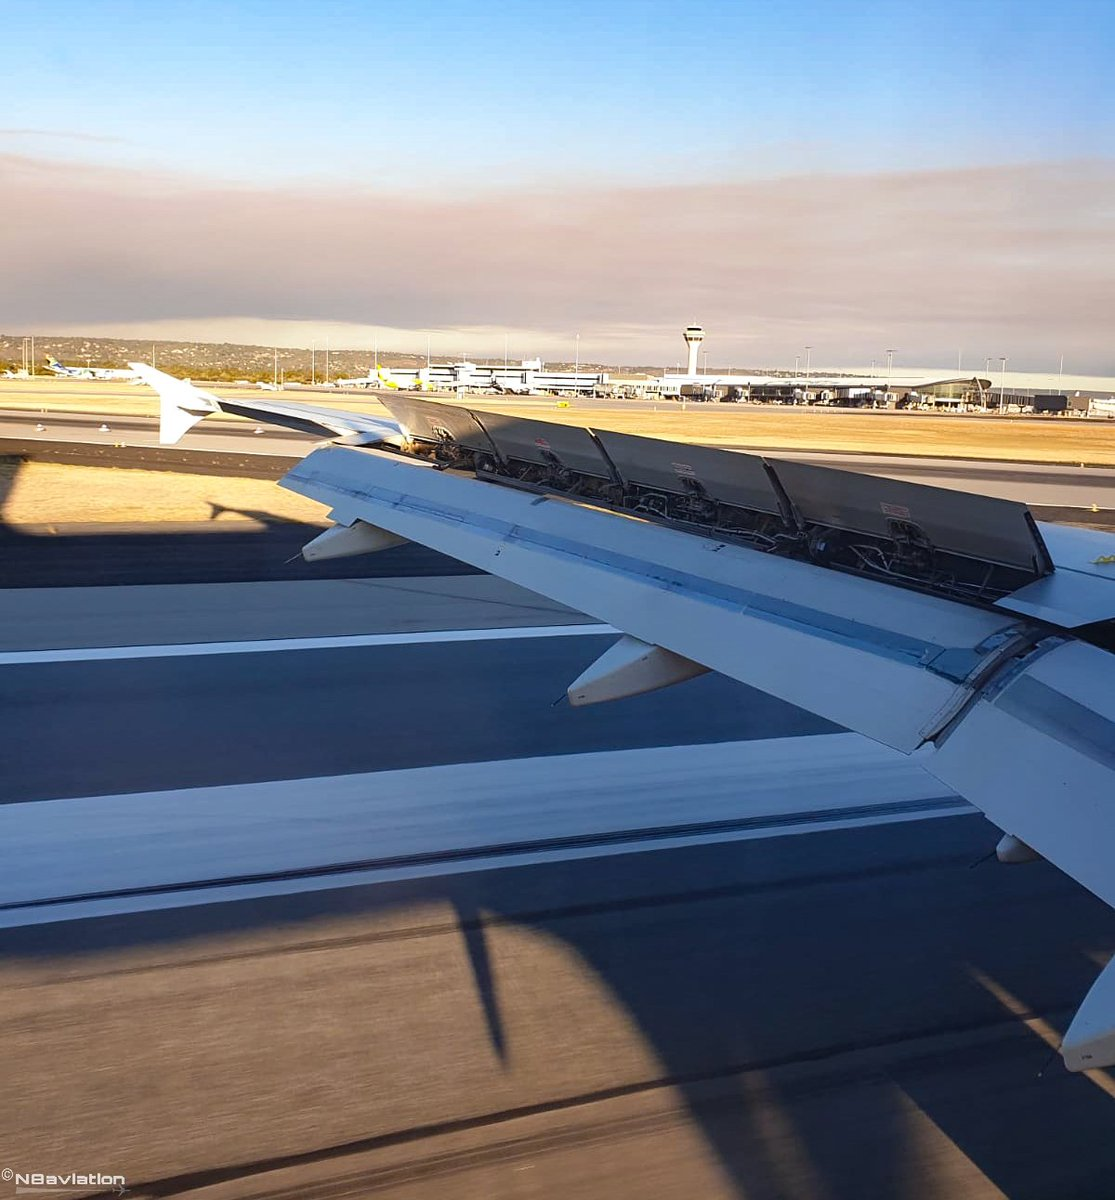 📸22 Apr 19 🔲 Onboard for this week's #fullflapsfriday. Spoilers deployed and on the brakes down #runway 21 at dry @PerthAirport, while a #fire in the distant hills provides a smokey backdrop. #onboard #windowseat #smokey #aviation #perth #sunset #touchdown #tourism #holiday https://t.co/OghMLj1YJK